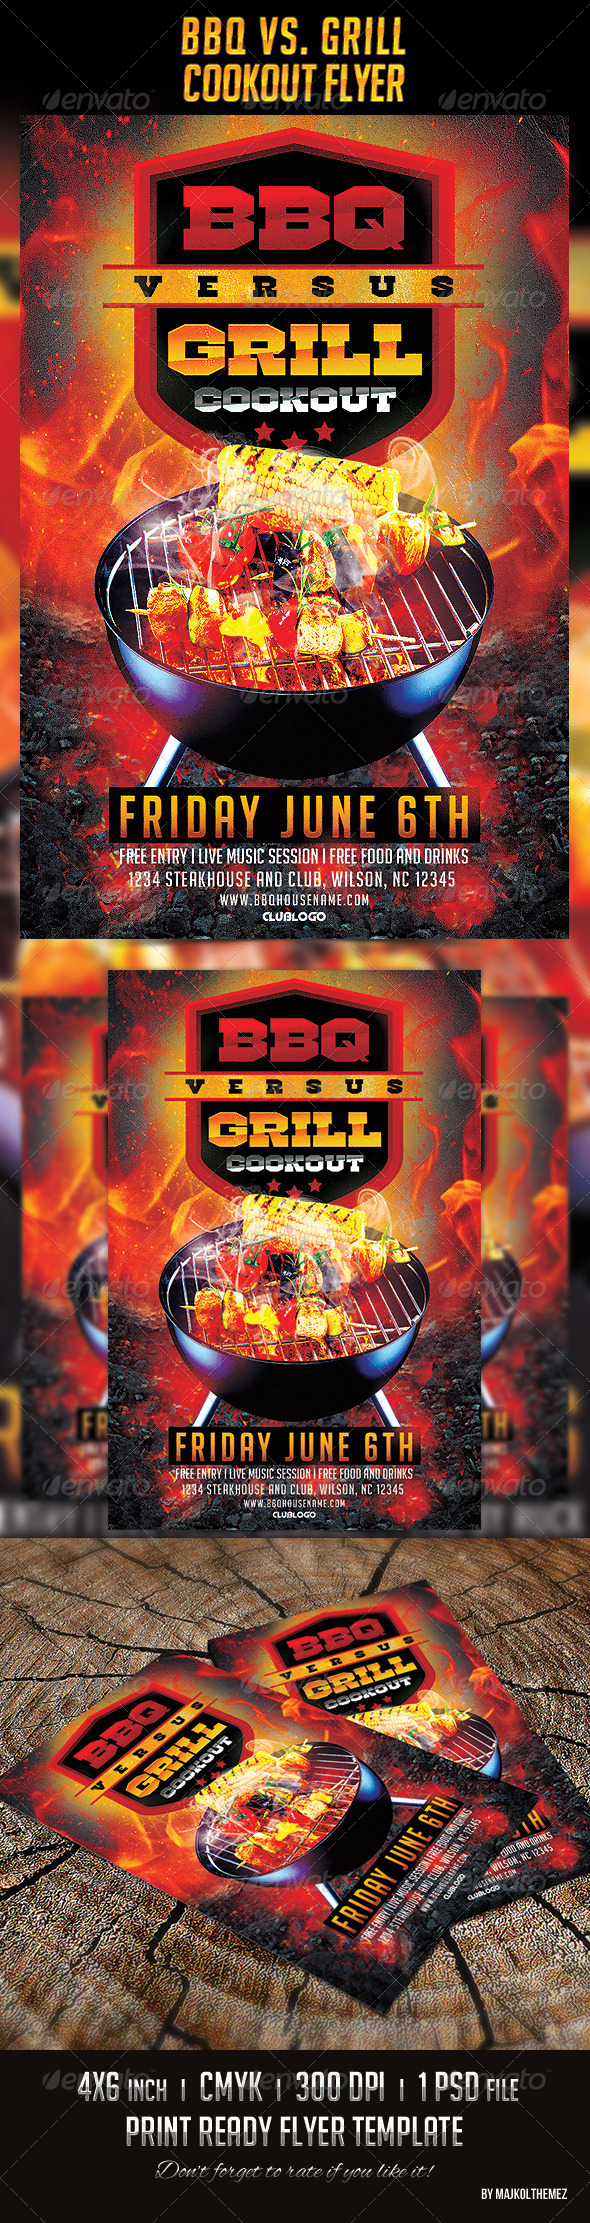 GraphicRiver BBQ vs Grill Cookout Flyer 7797366